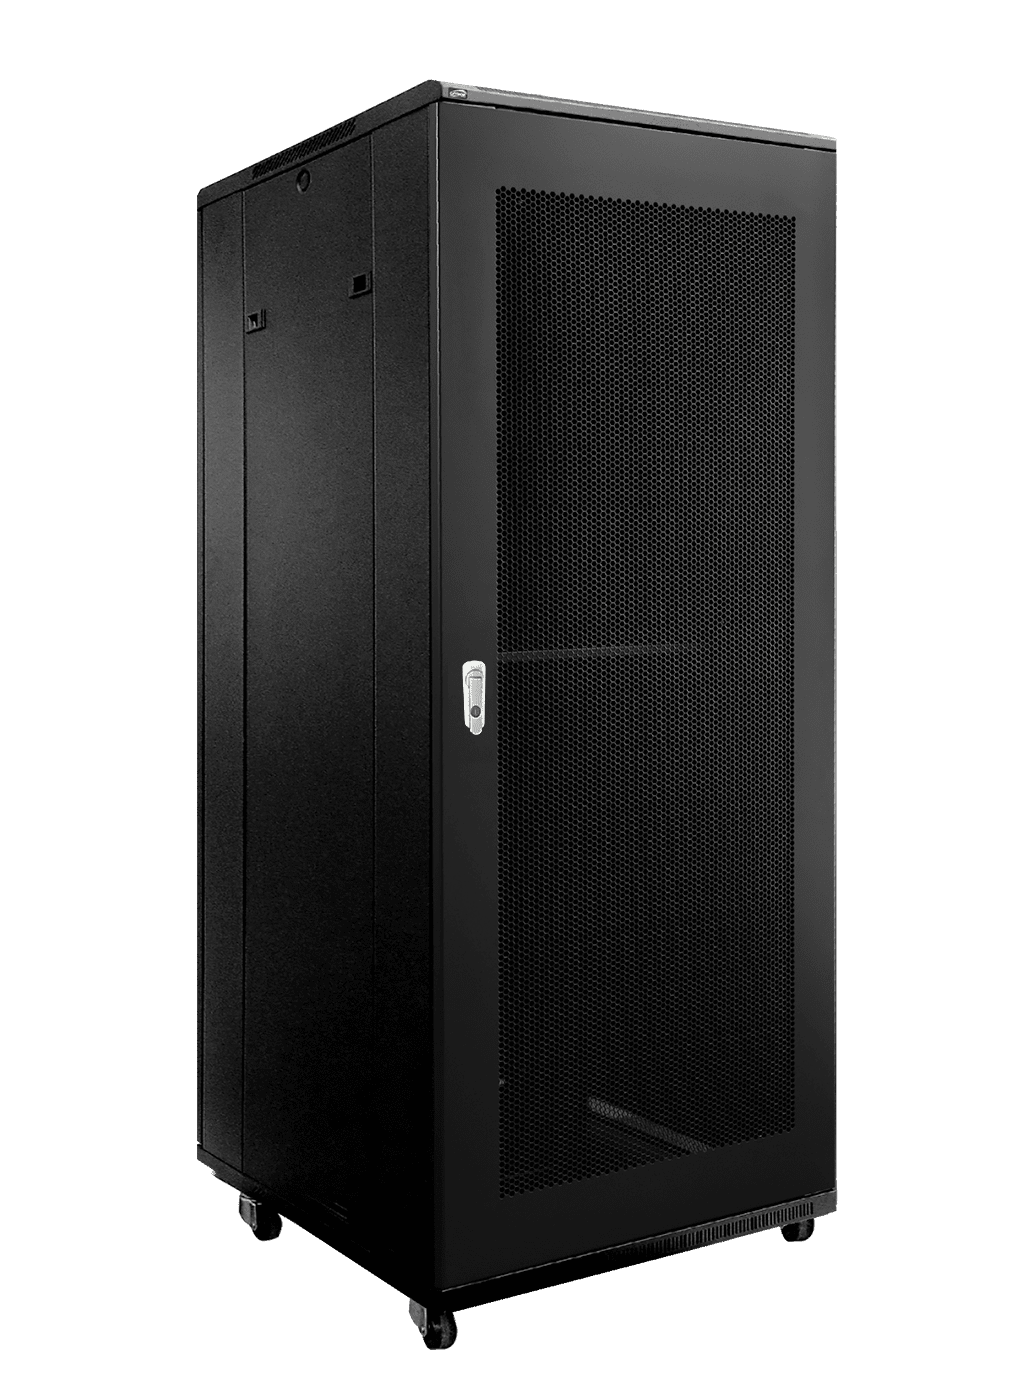 "SPR832GG - 19"" rack cabinet - 32 units - 600mm W x 800mm D - Grill front & rear door"